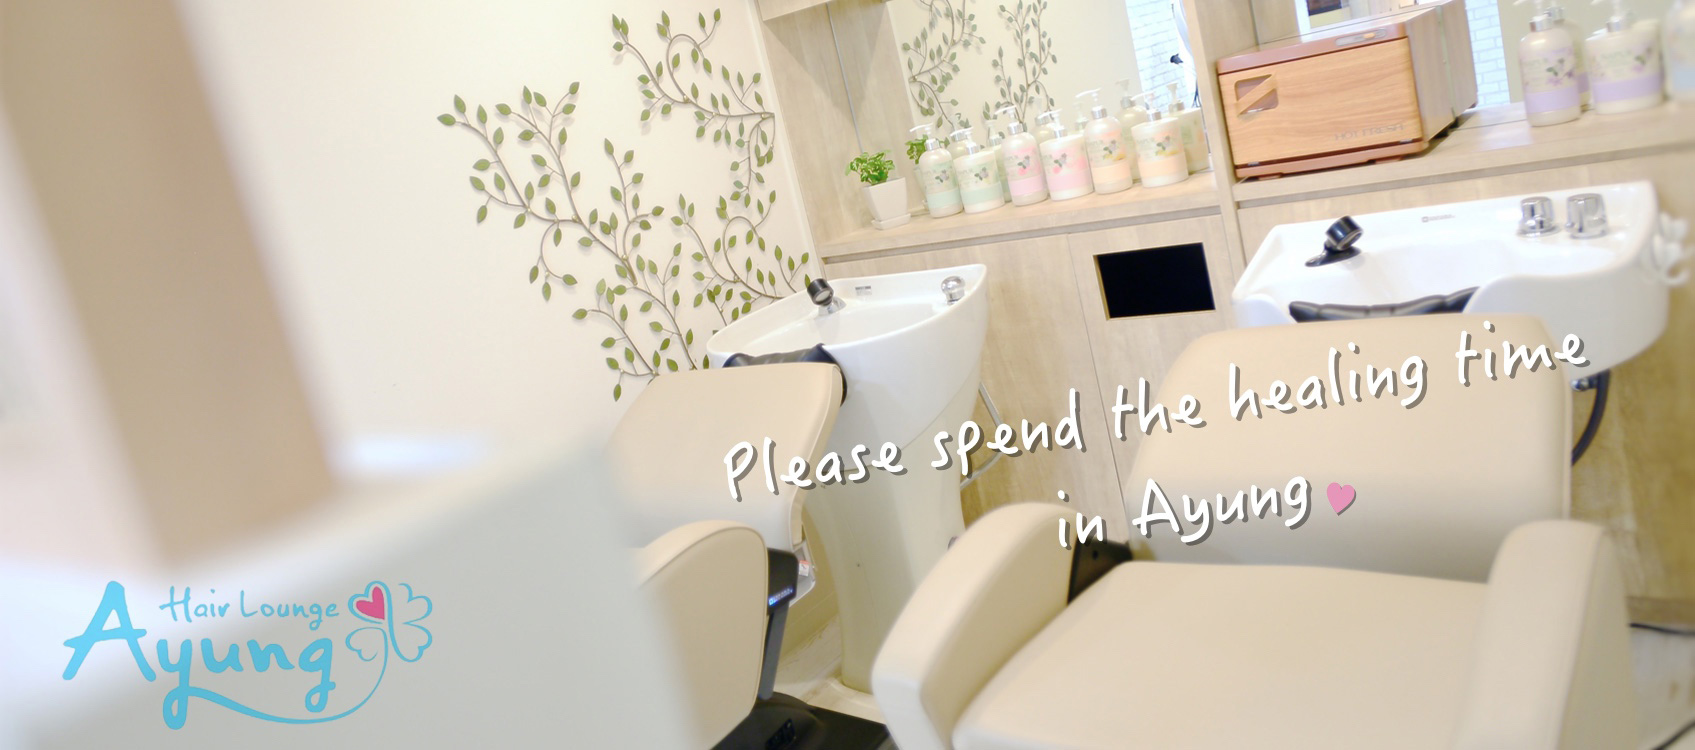 Hair Lounge Ayung